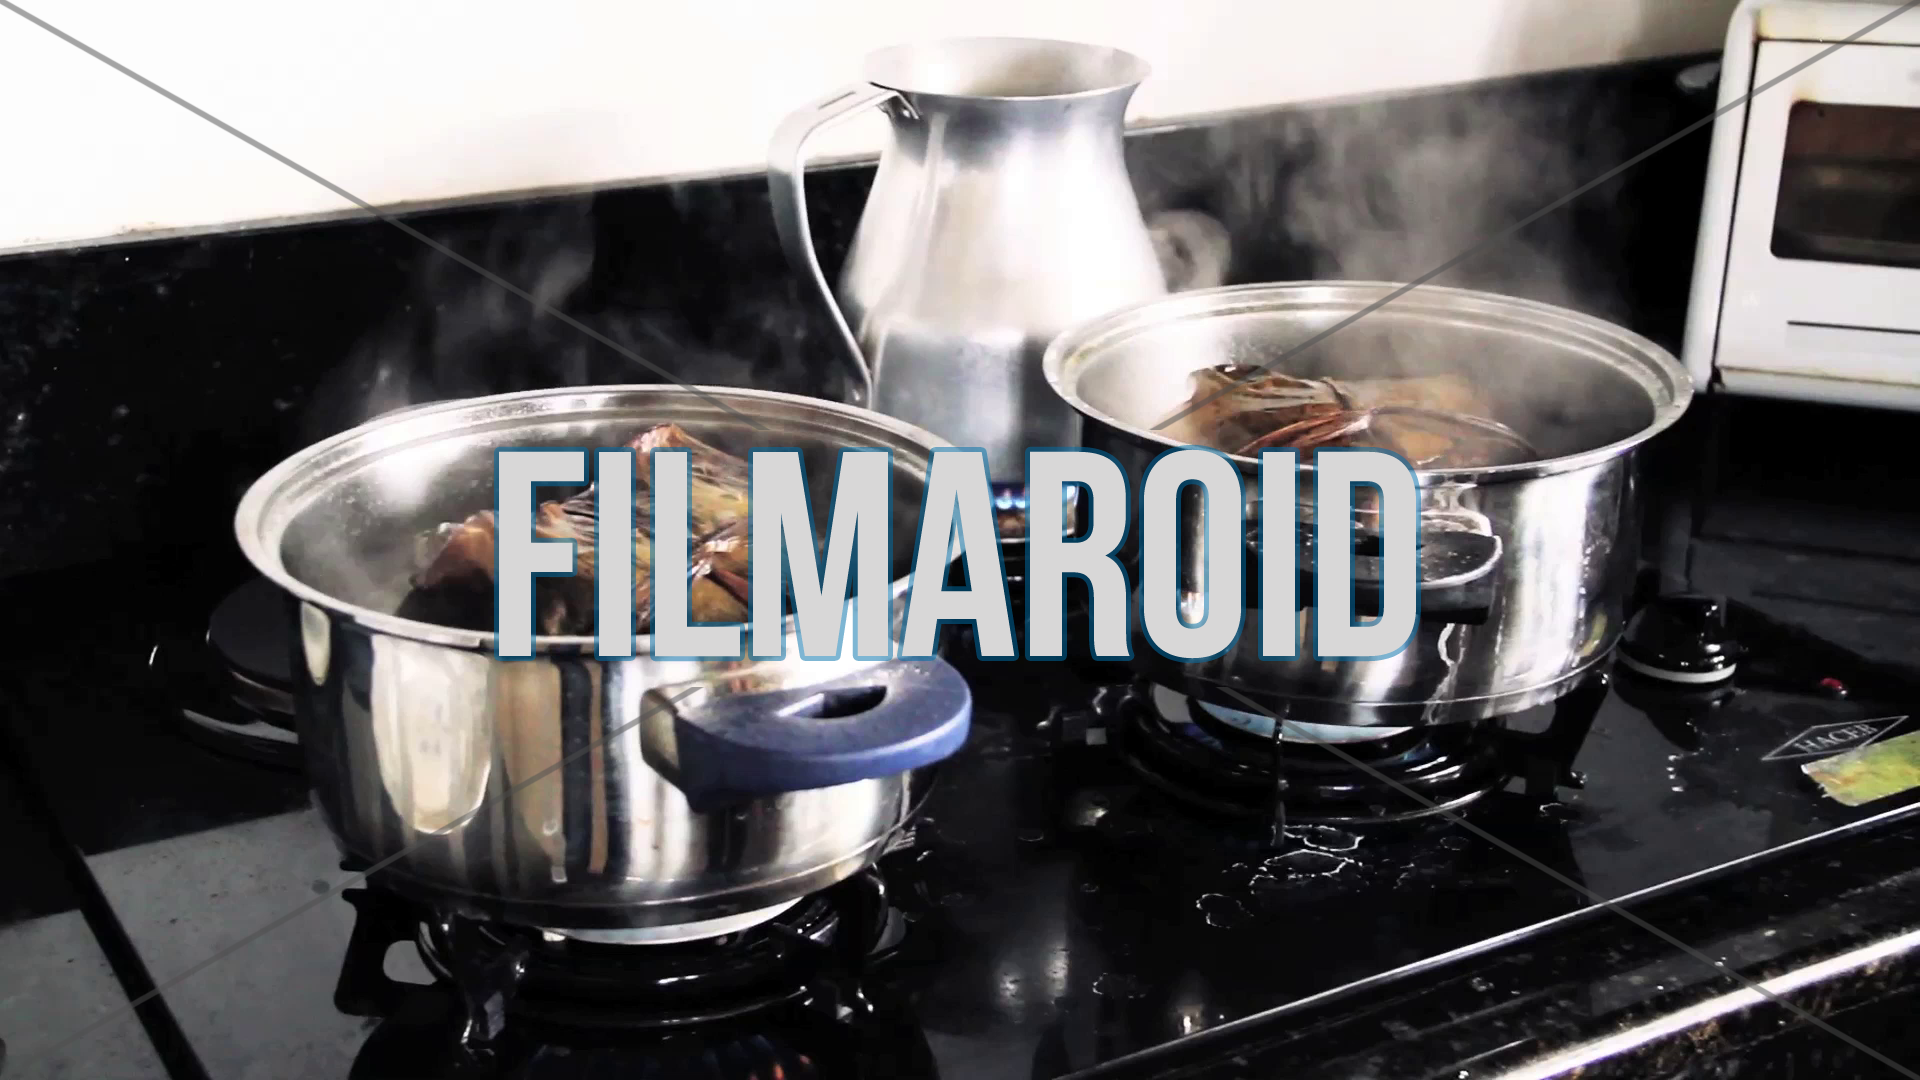 Set of colombian tamales being cooked in boiling water with lots of steam - A collection of stock footage about Food